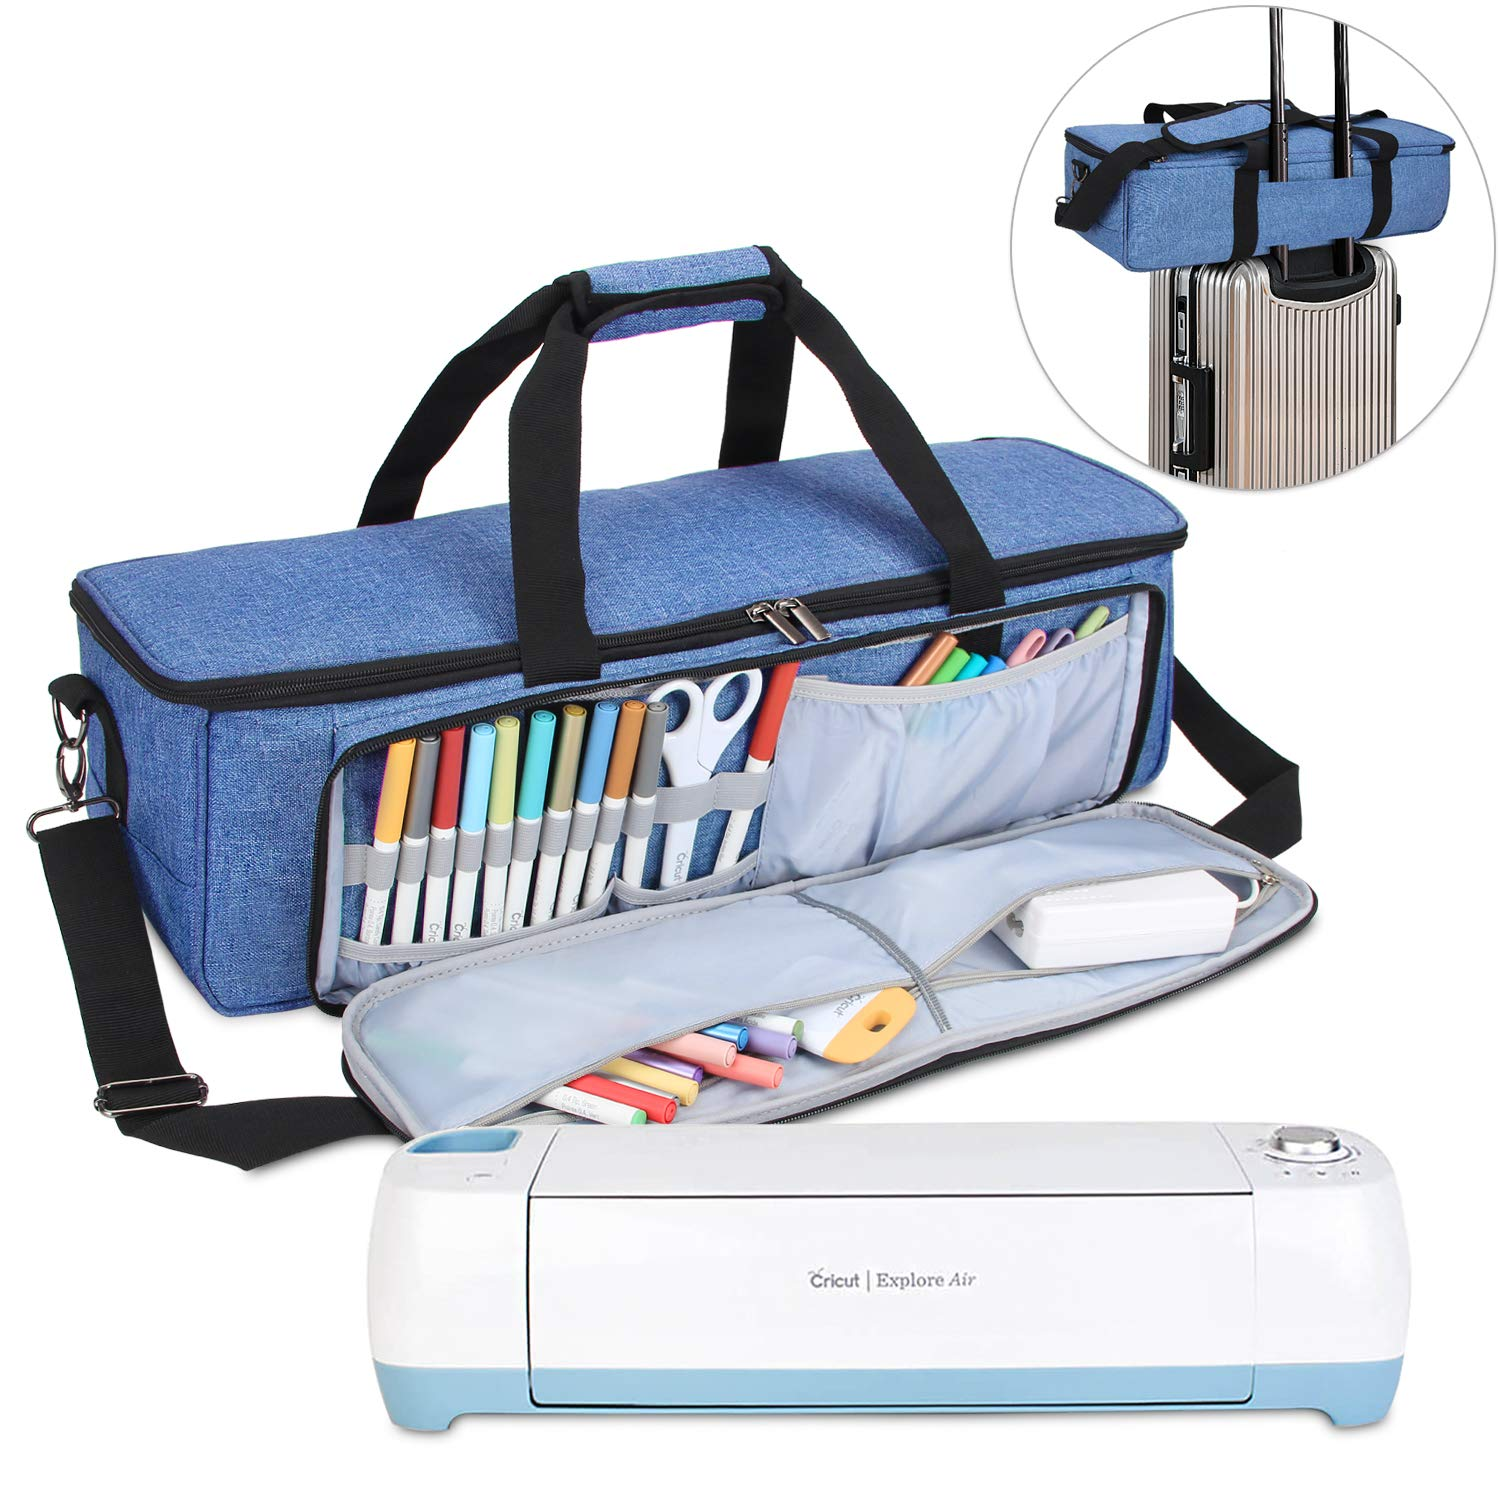 and Maker Bag Only, Patent Pending Air2 Tote Bag Compatible with Cricut Explore Air Gray Dots Luxja Carrying Bag Compatible with Cricut Die-Cutting Machine and Supplies